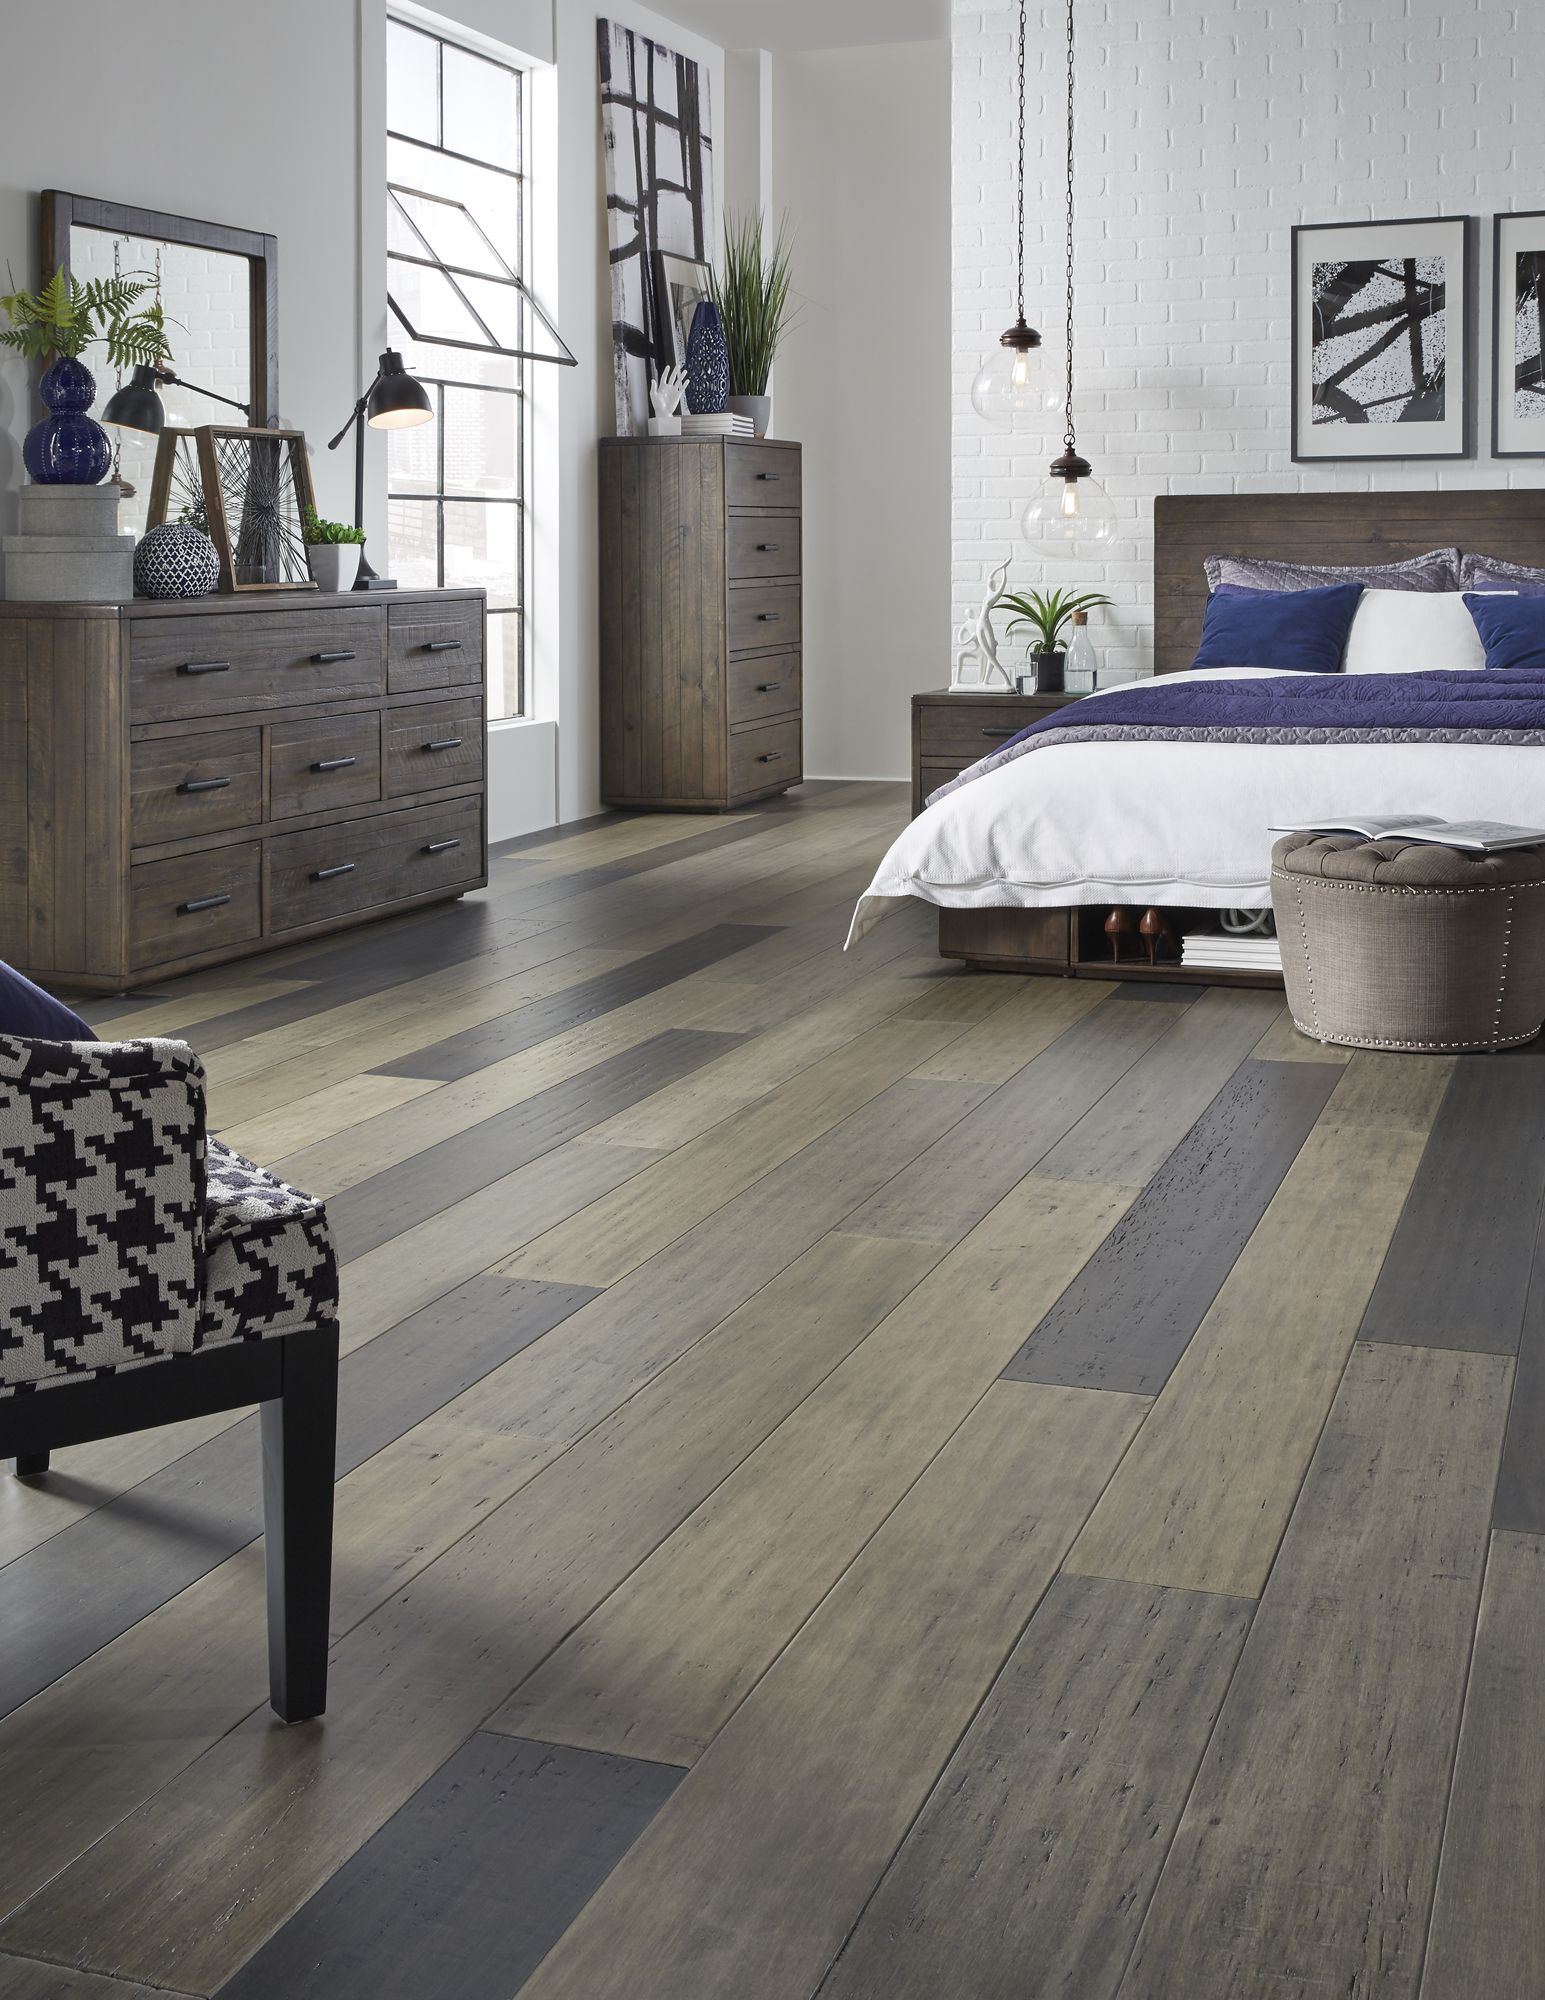 Stonehouse Manor Engineered Bamboo Offers Stylish Contrast And Rhyme Wide Width Planks In Tren Grey Vinyl Plank Flooring Modern Bedroom Asian Inspired Bedroom